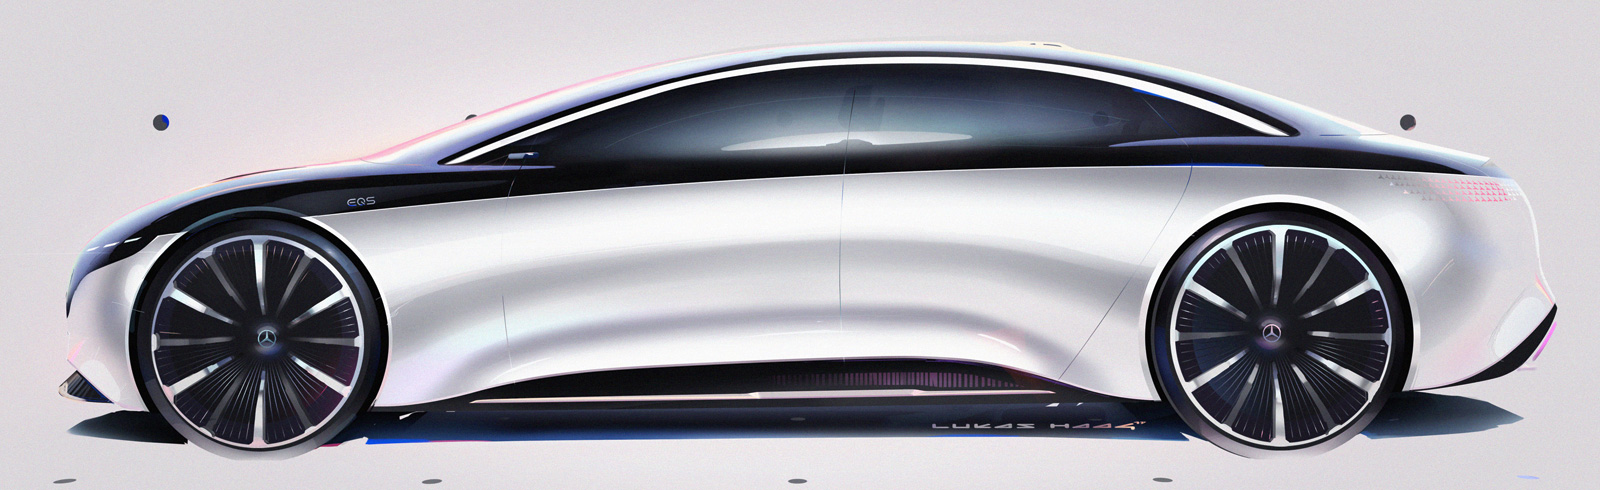 Mercedes-Benz Vision EQS is officially unveiled with a range of 700 km